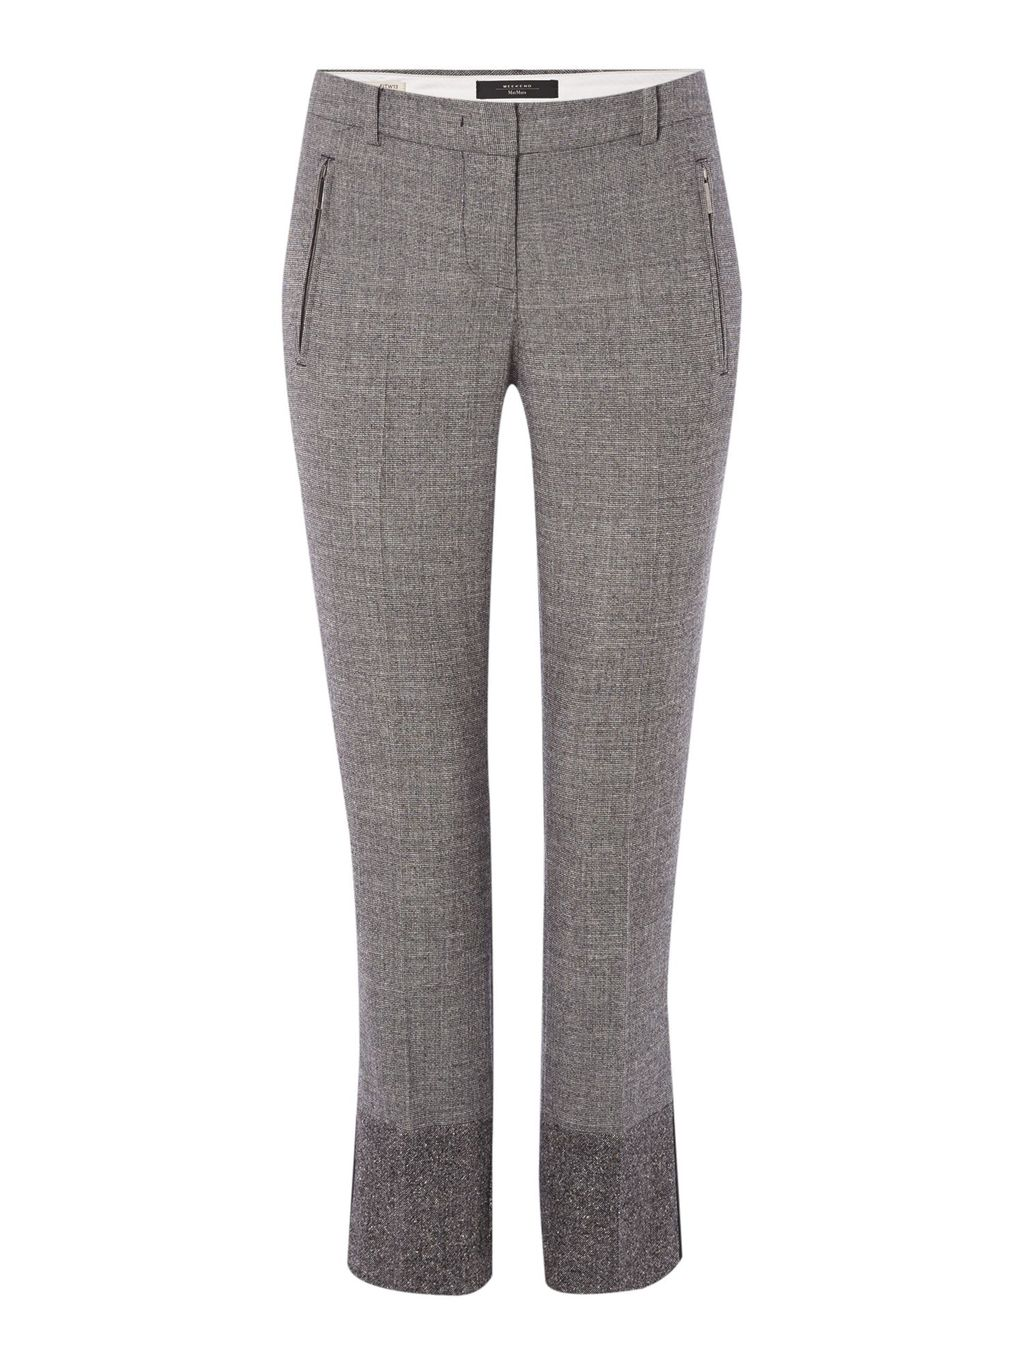 Scacco Cropped Check Trouser, Black - pattern: checked/gingham; pocket detail: pockets at the sides; waist: mid/regular rise; predominant colour: mid grey; occasions: casual, work, creative work; length: ankle length; fibres: wool - stretch; waist detail: narrow waistband; fit: slim leg; pattern type: fabric; texture group: woven light midweight; style: standard; pattern size: standard (bottom); season: a/w 2015